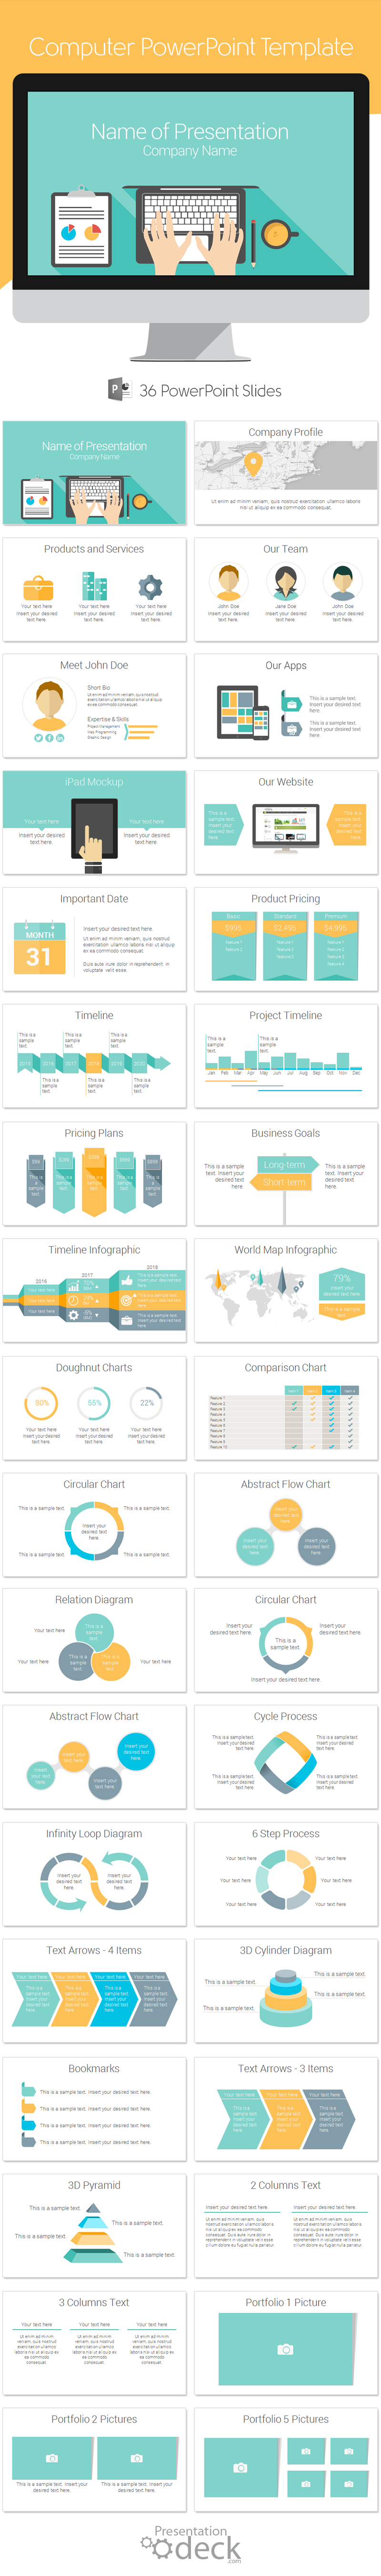 Computer Powerpoint Template Pinterest Data Entry Flat Design Circuit Board Ppt Templates In Style With 36 Pre Designed Slides This Is A Great Choice For Presentations On Marketing Programming